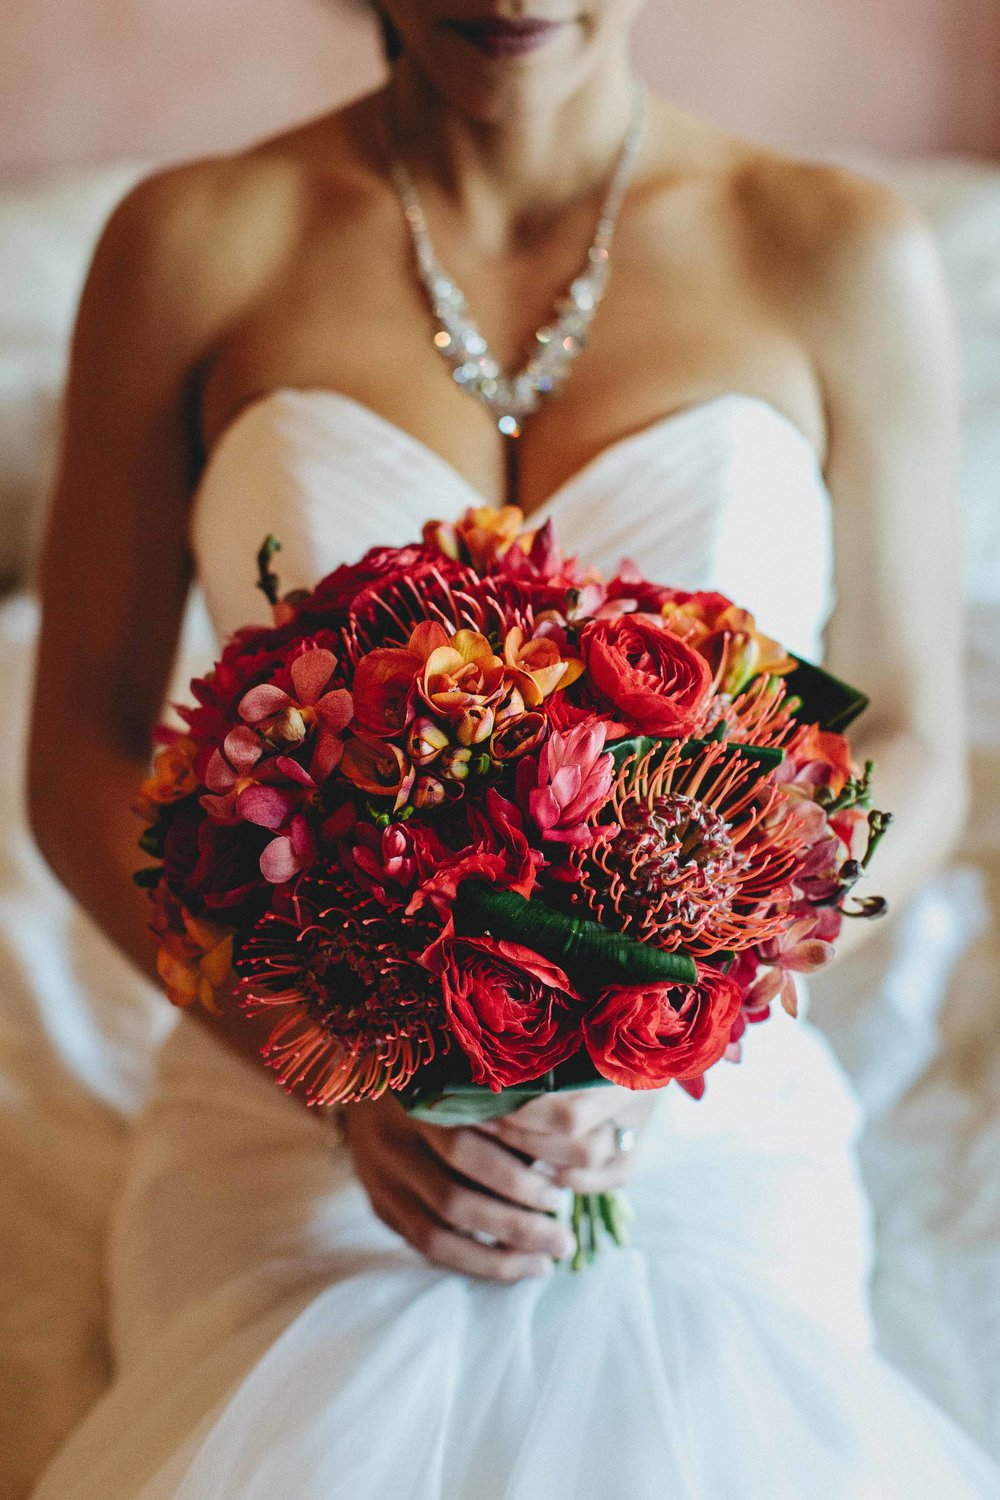 Villa-Botanica-Wedding-Photographer-Playback-Studios114of760.jpg